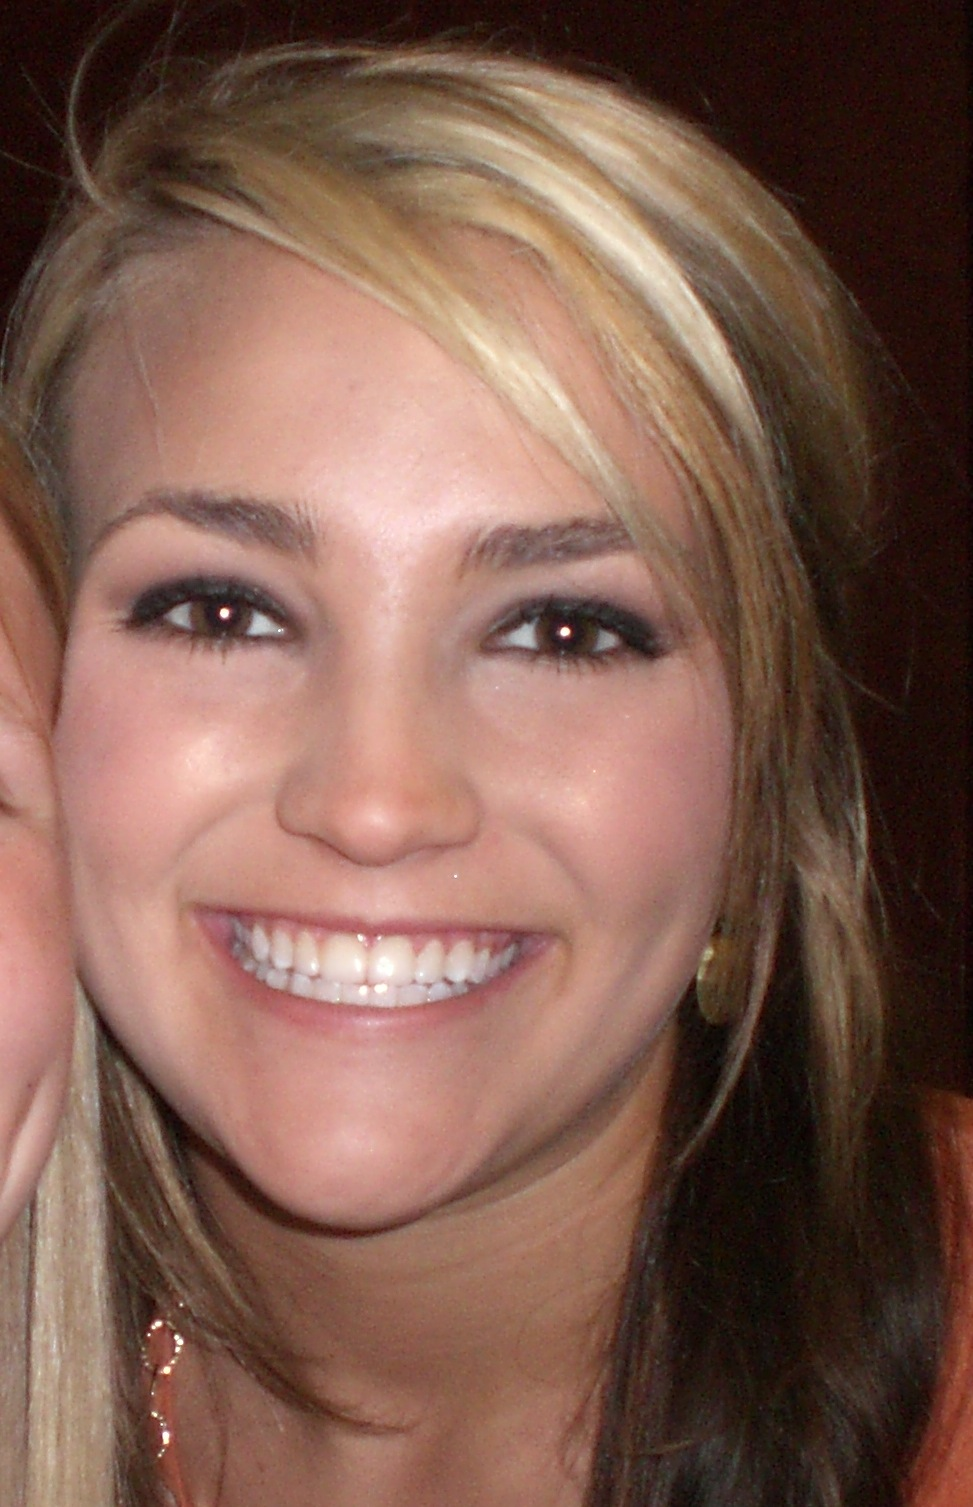 The 29-year old daughter of father (?) and mother(?) Jamie Lynn Spears in 2020 photo. Jamie Lynn Spears earned a million dollar salary - leaving the net worth at 5 million in 2020